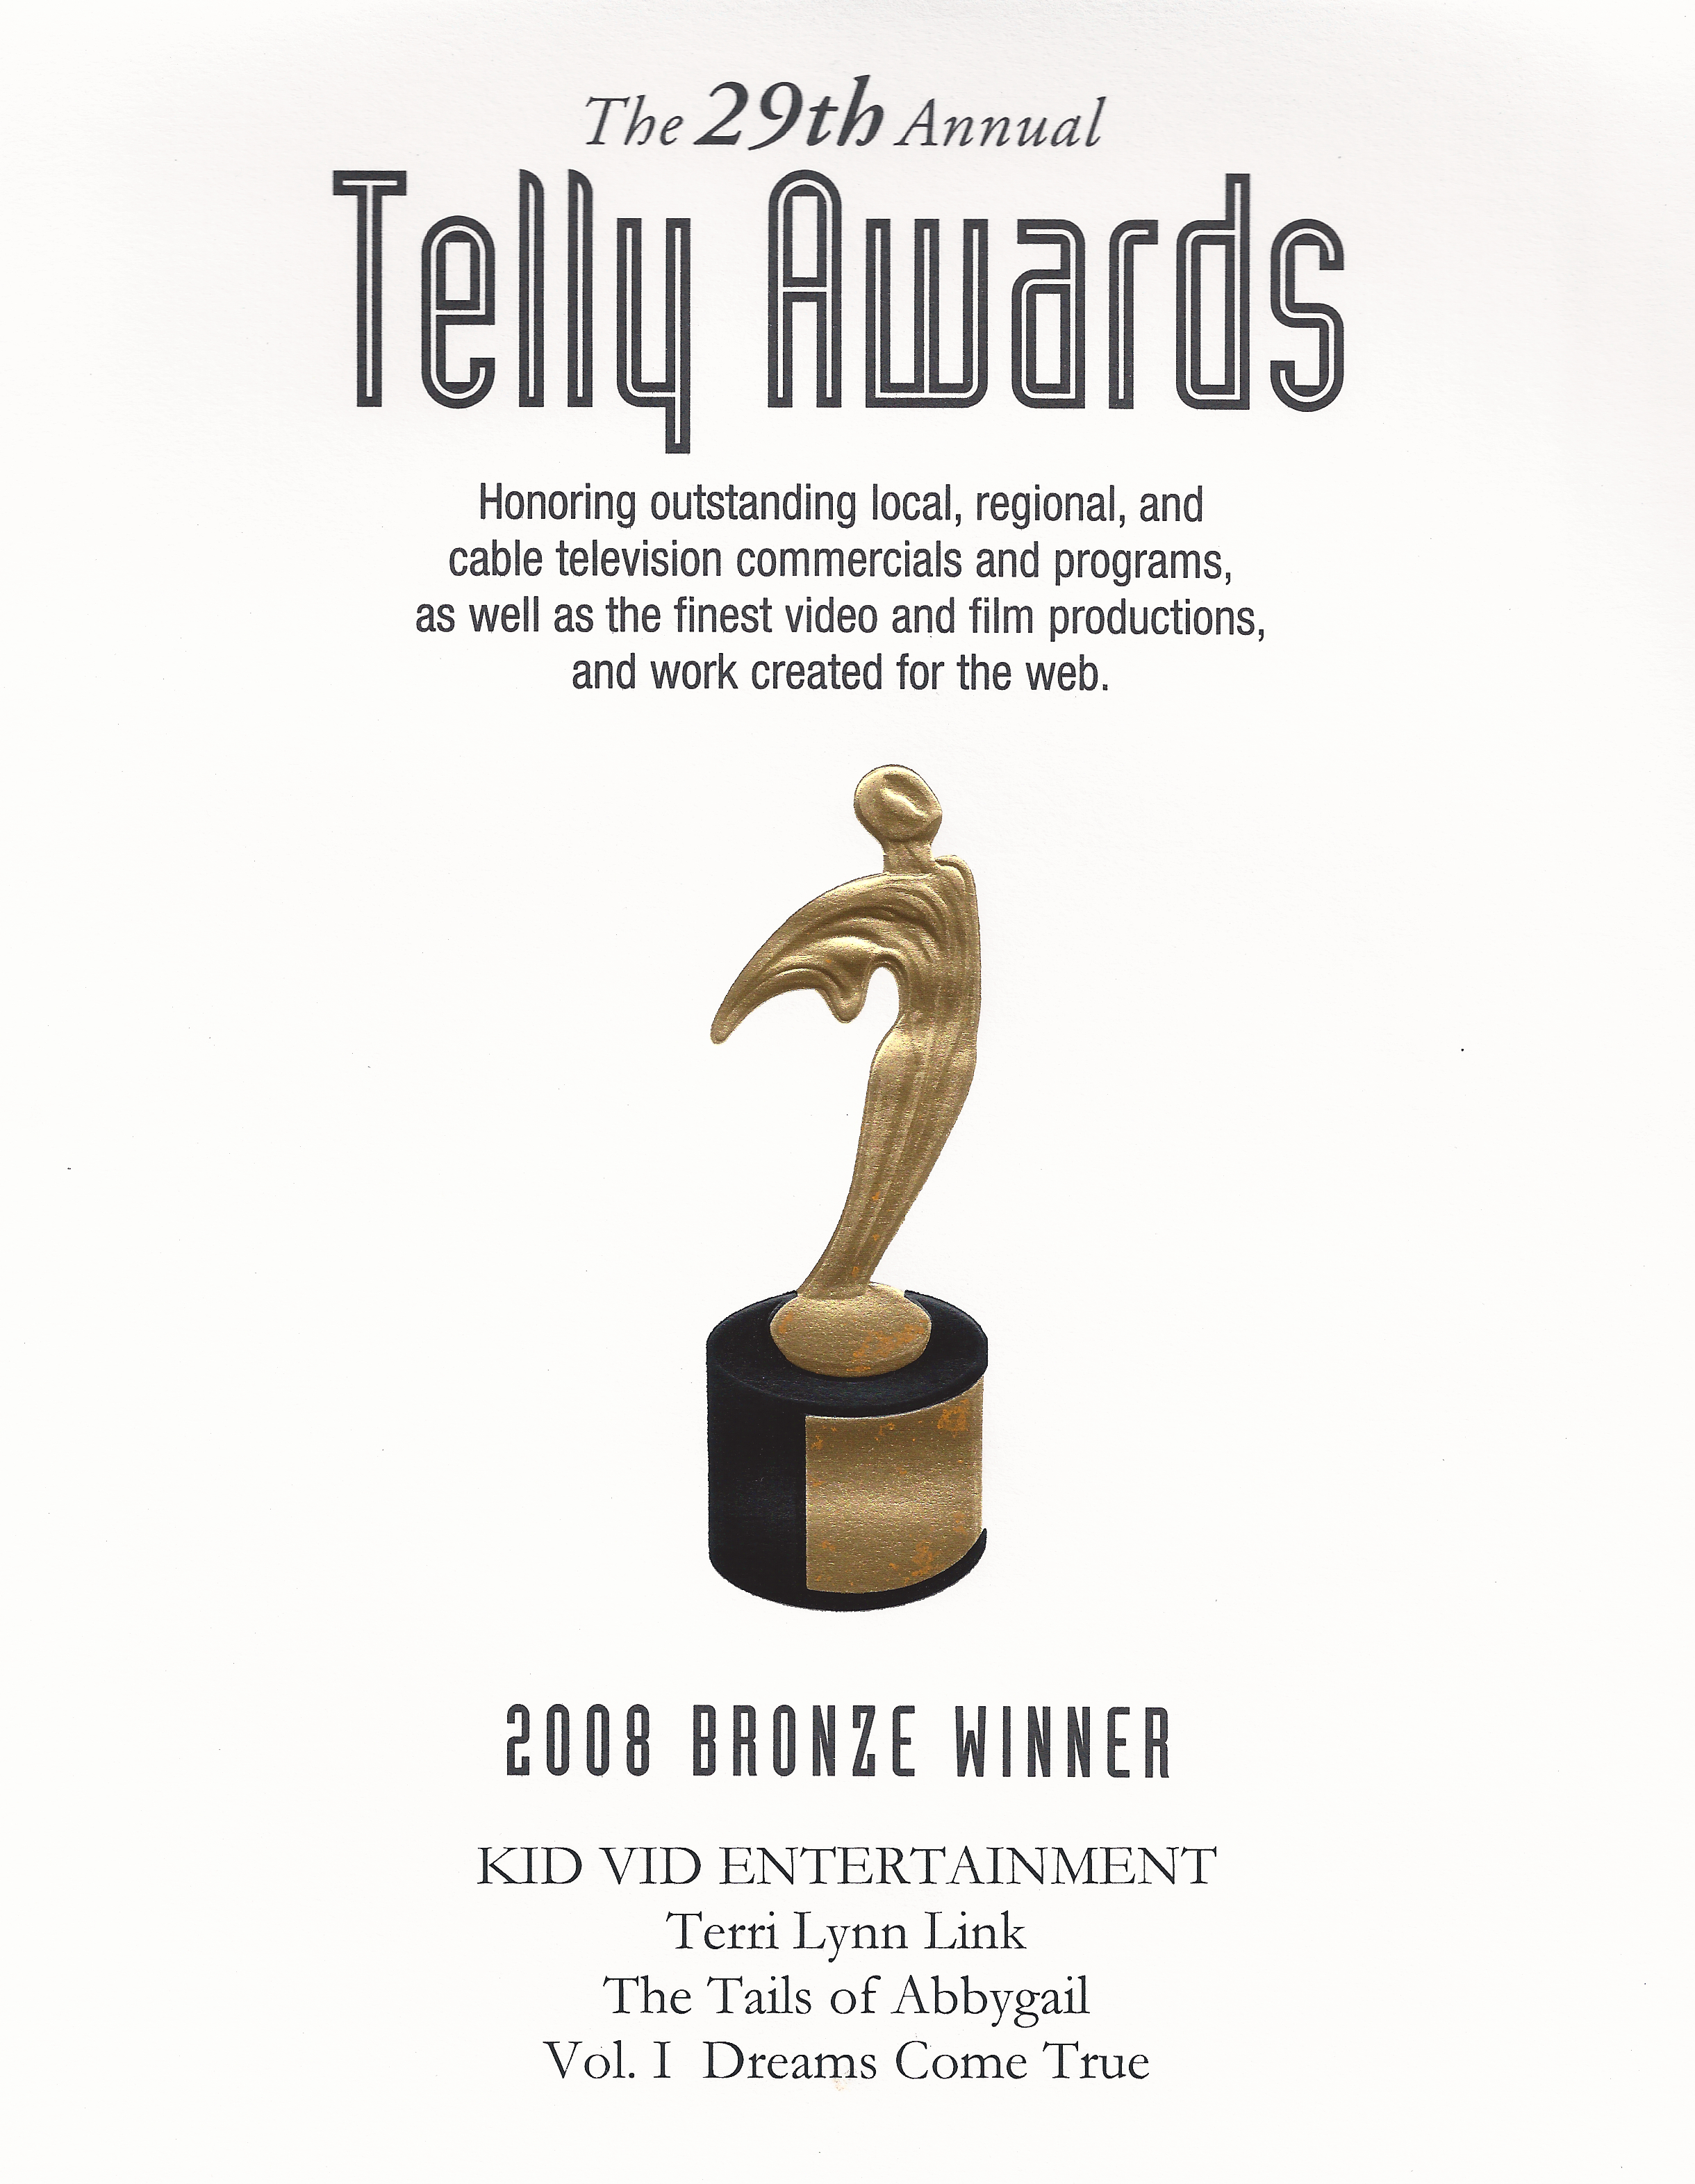 Telly Award The Tails of Abbygail